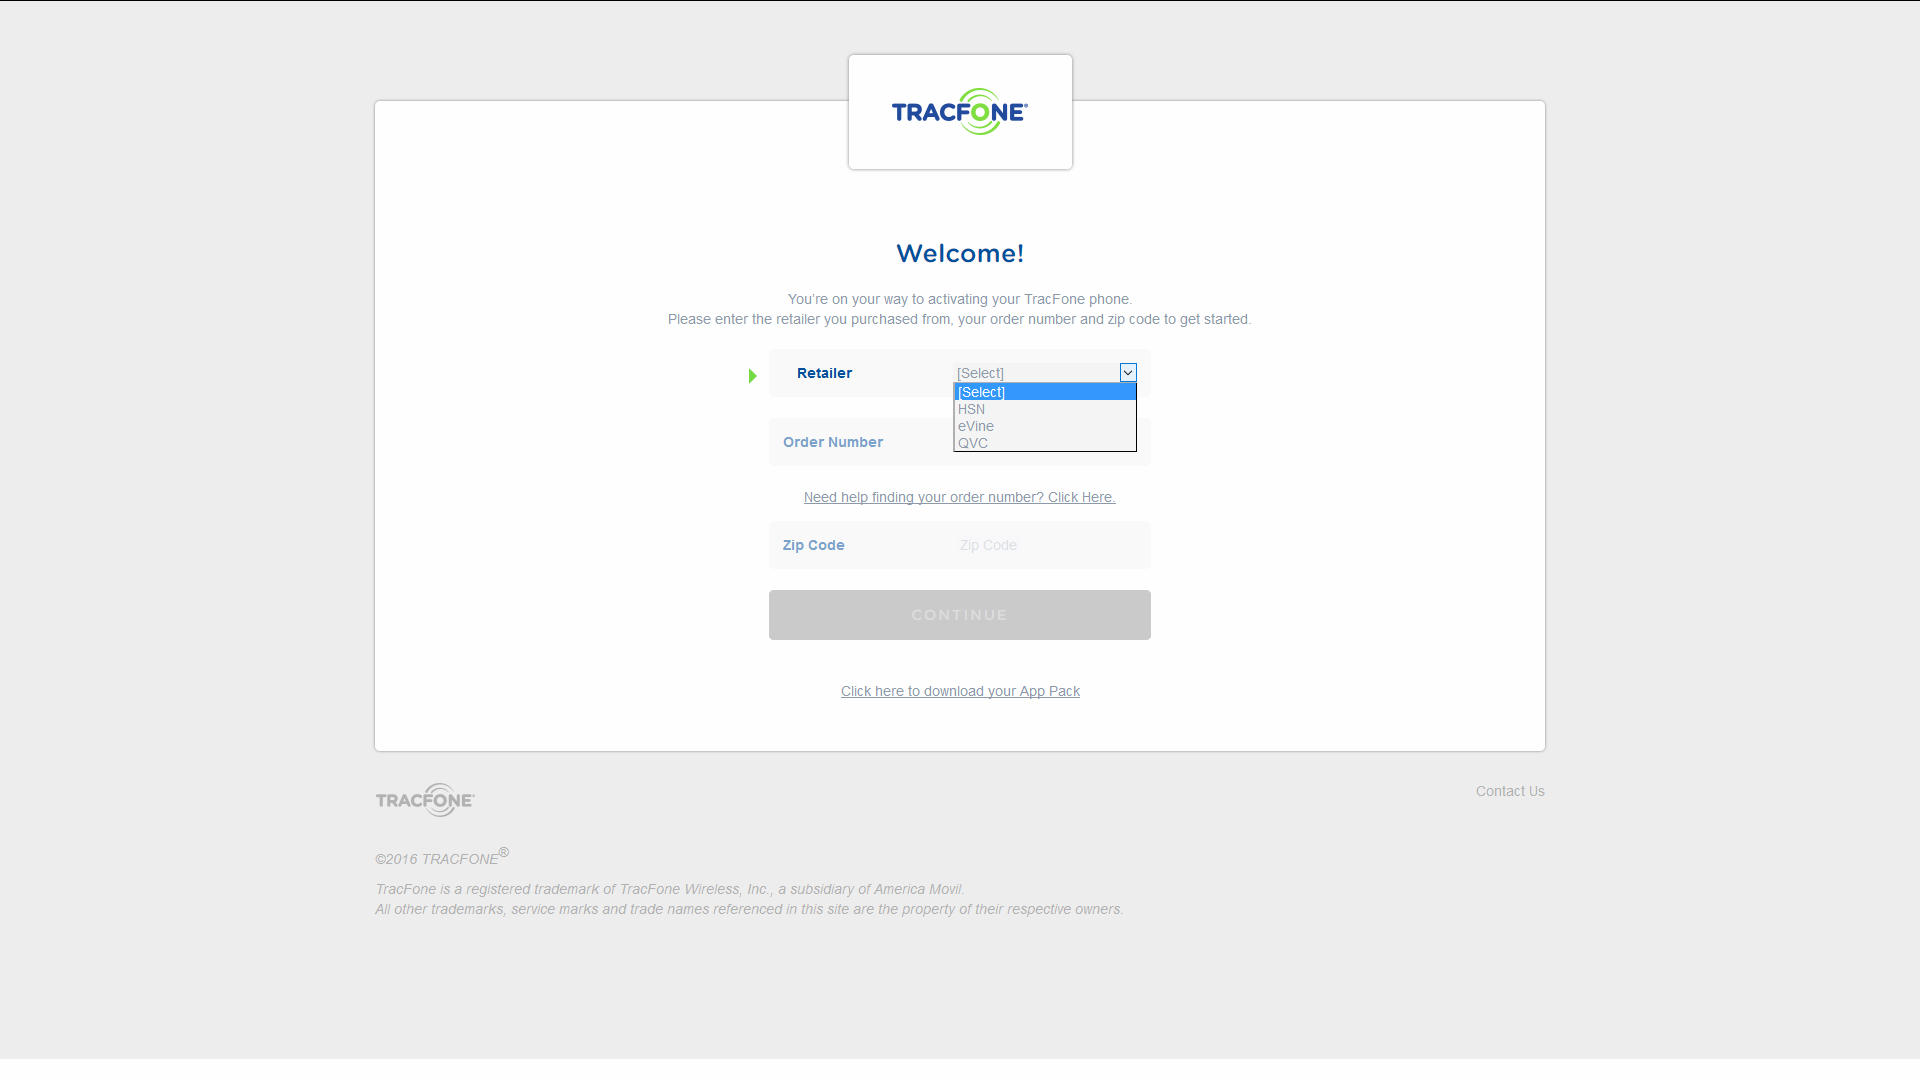 New Activation Site for HSNQVCEVINE Tracfone Bundles – Sites With Payment Plans Like Qvc